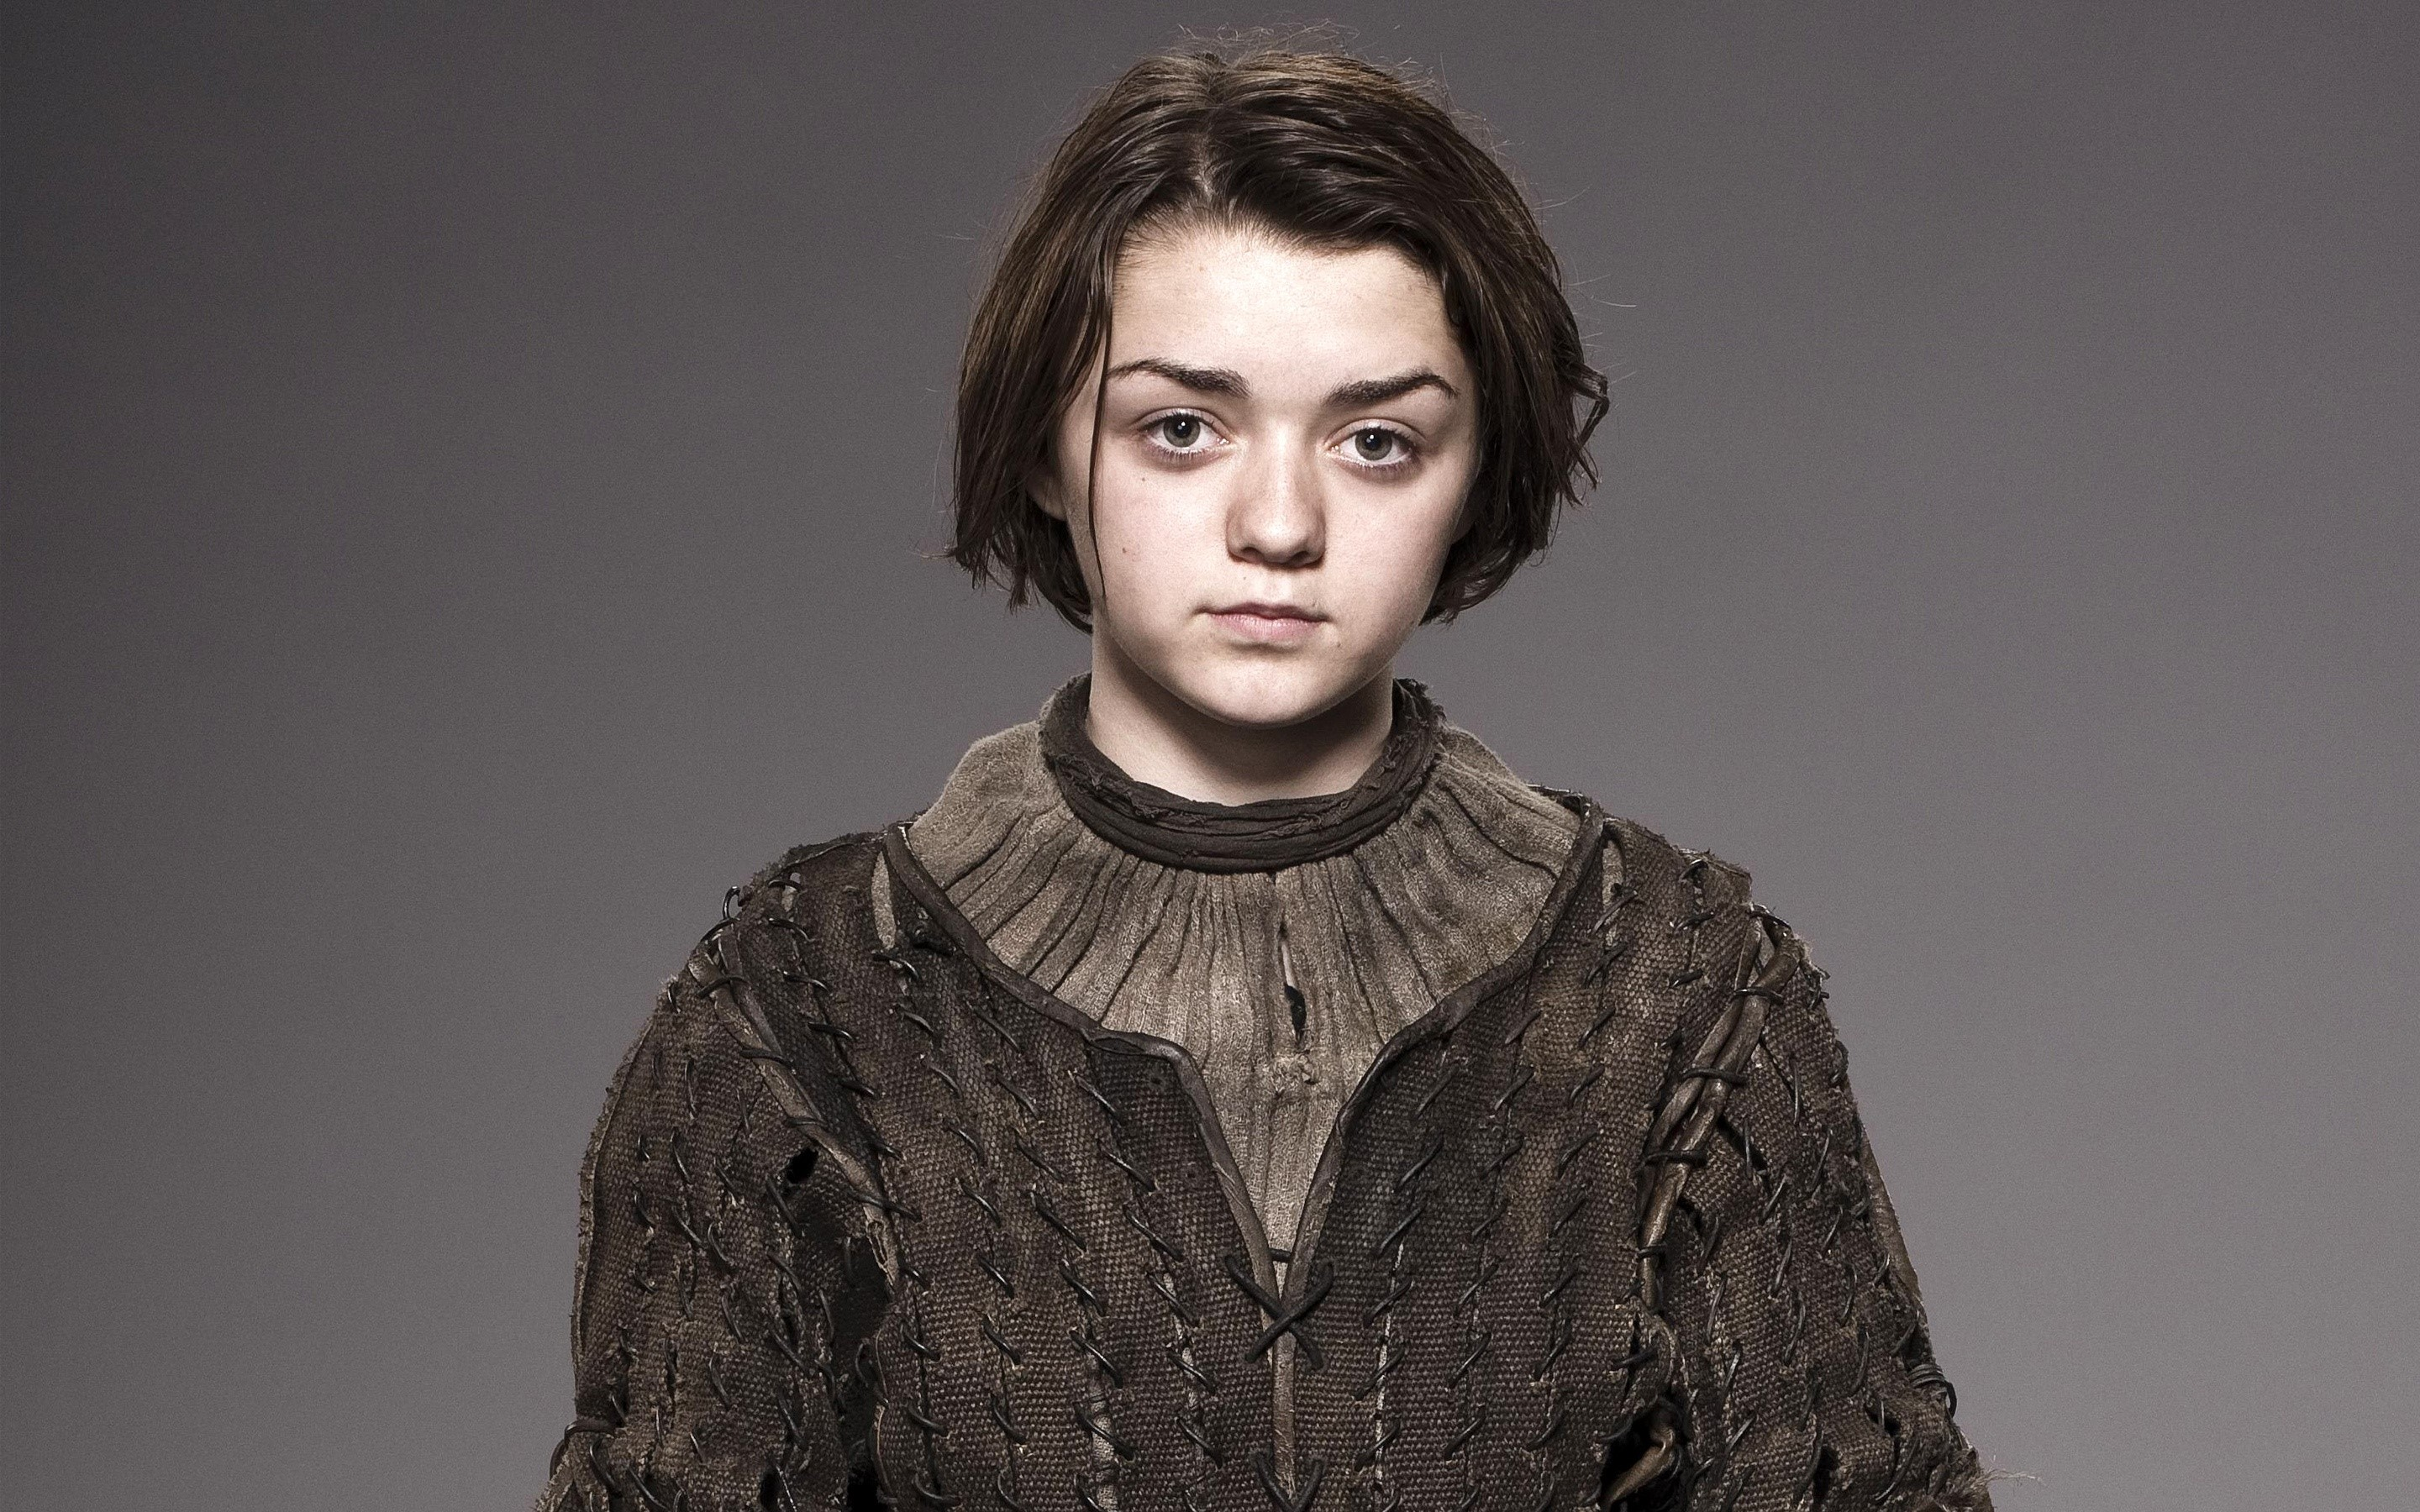 Fondos de pantalla Arya Stark de Game Of Thrones